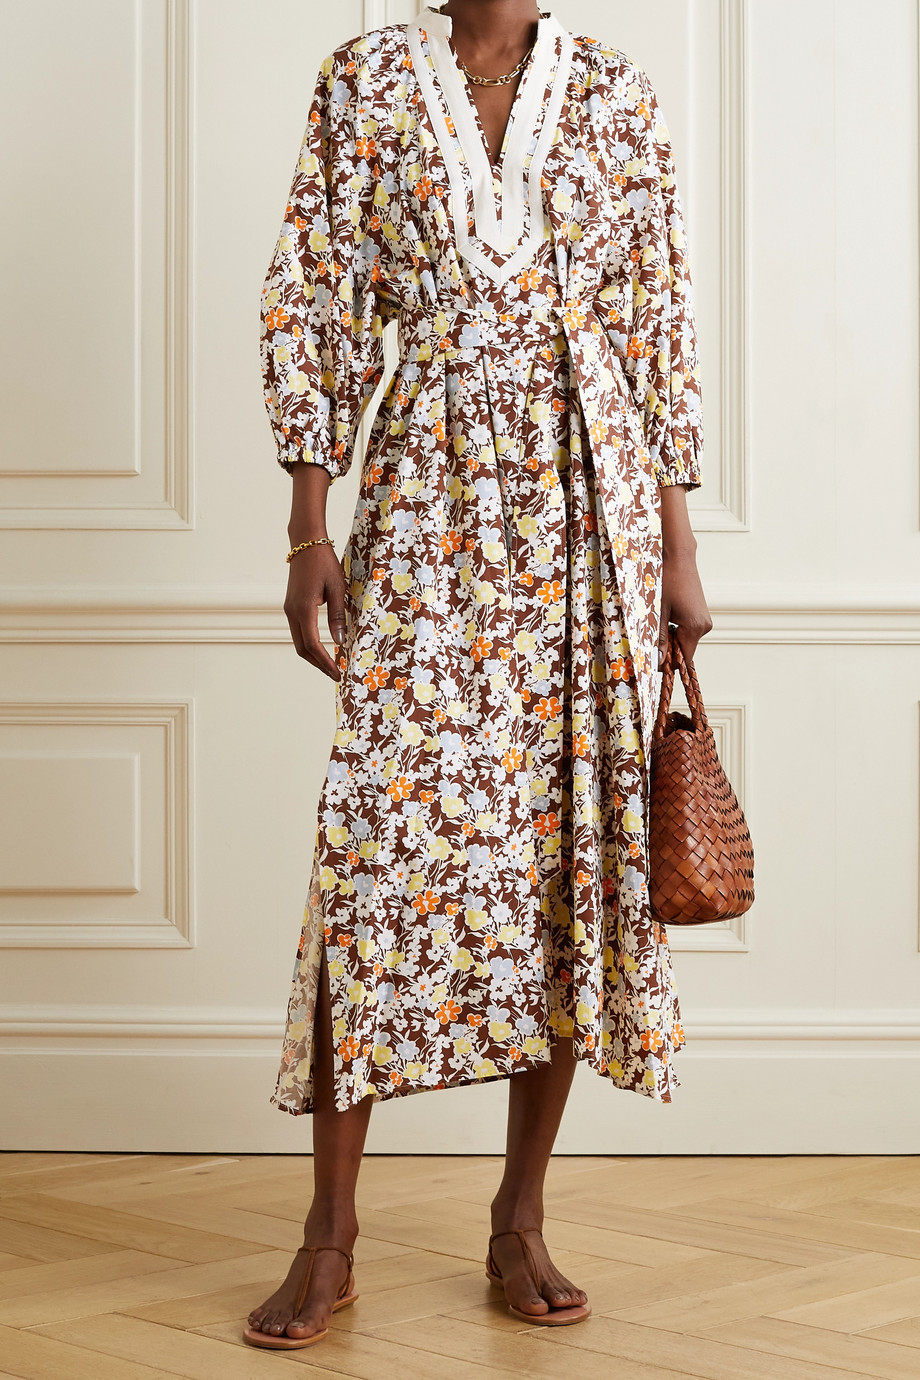 TORY BURCH Grosgrain-trimmed floral-print cotton midi dress